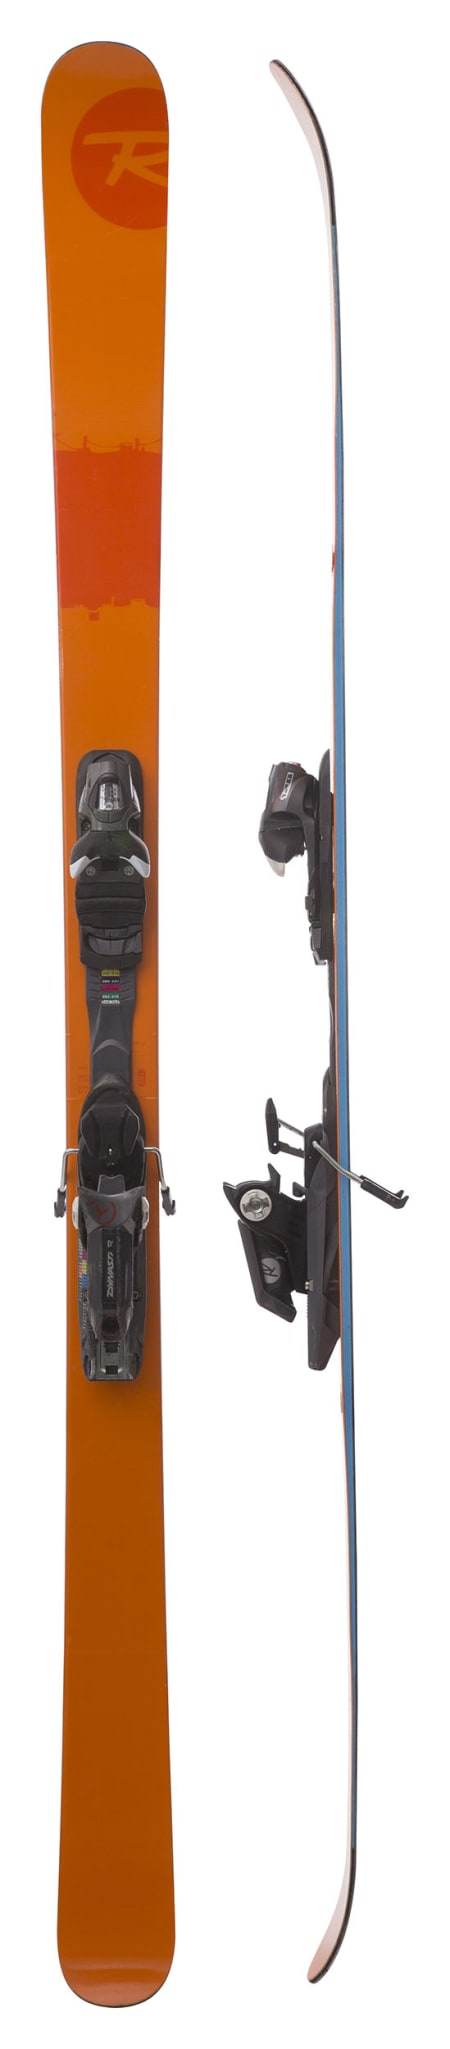 Test av Rossignol Scratch